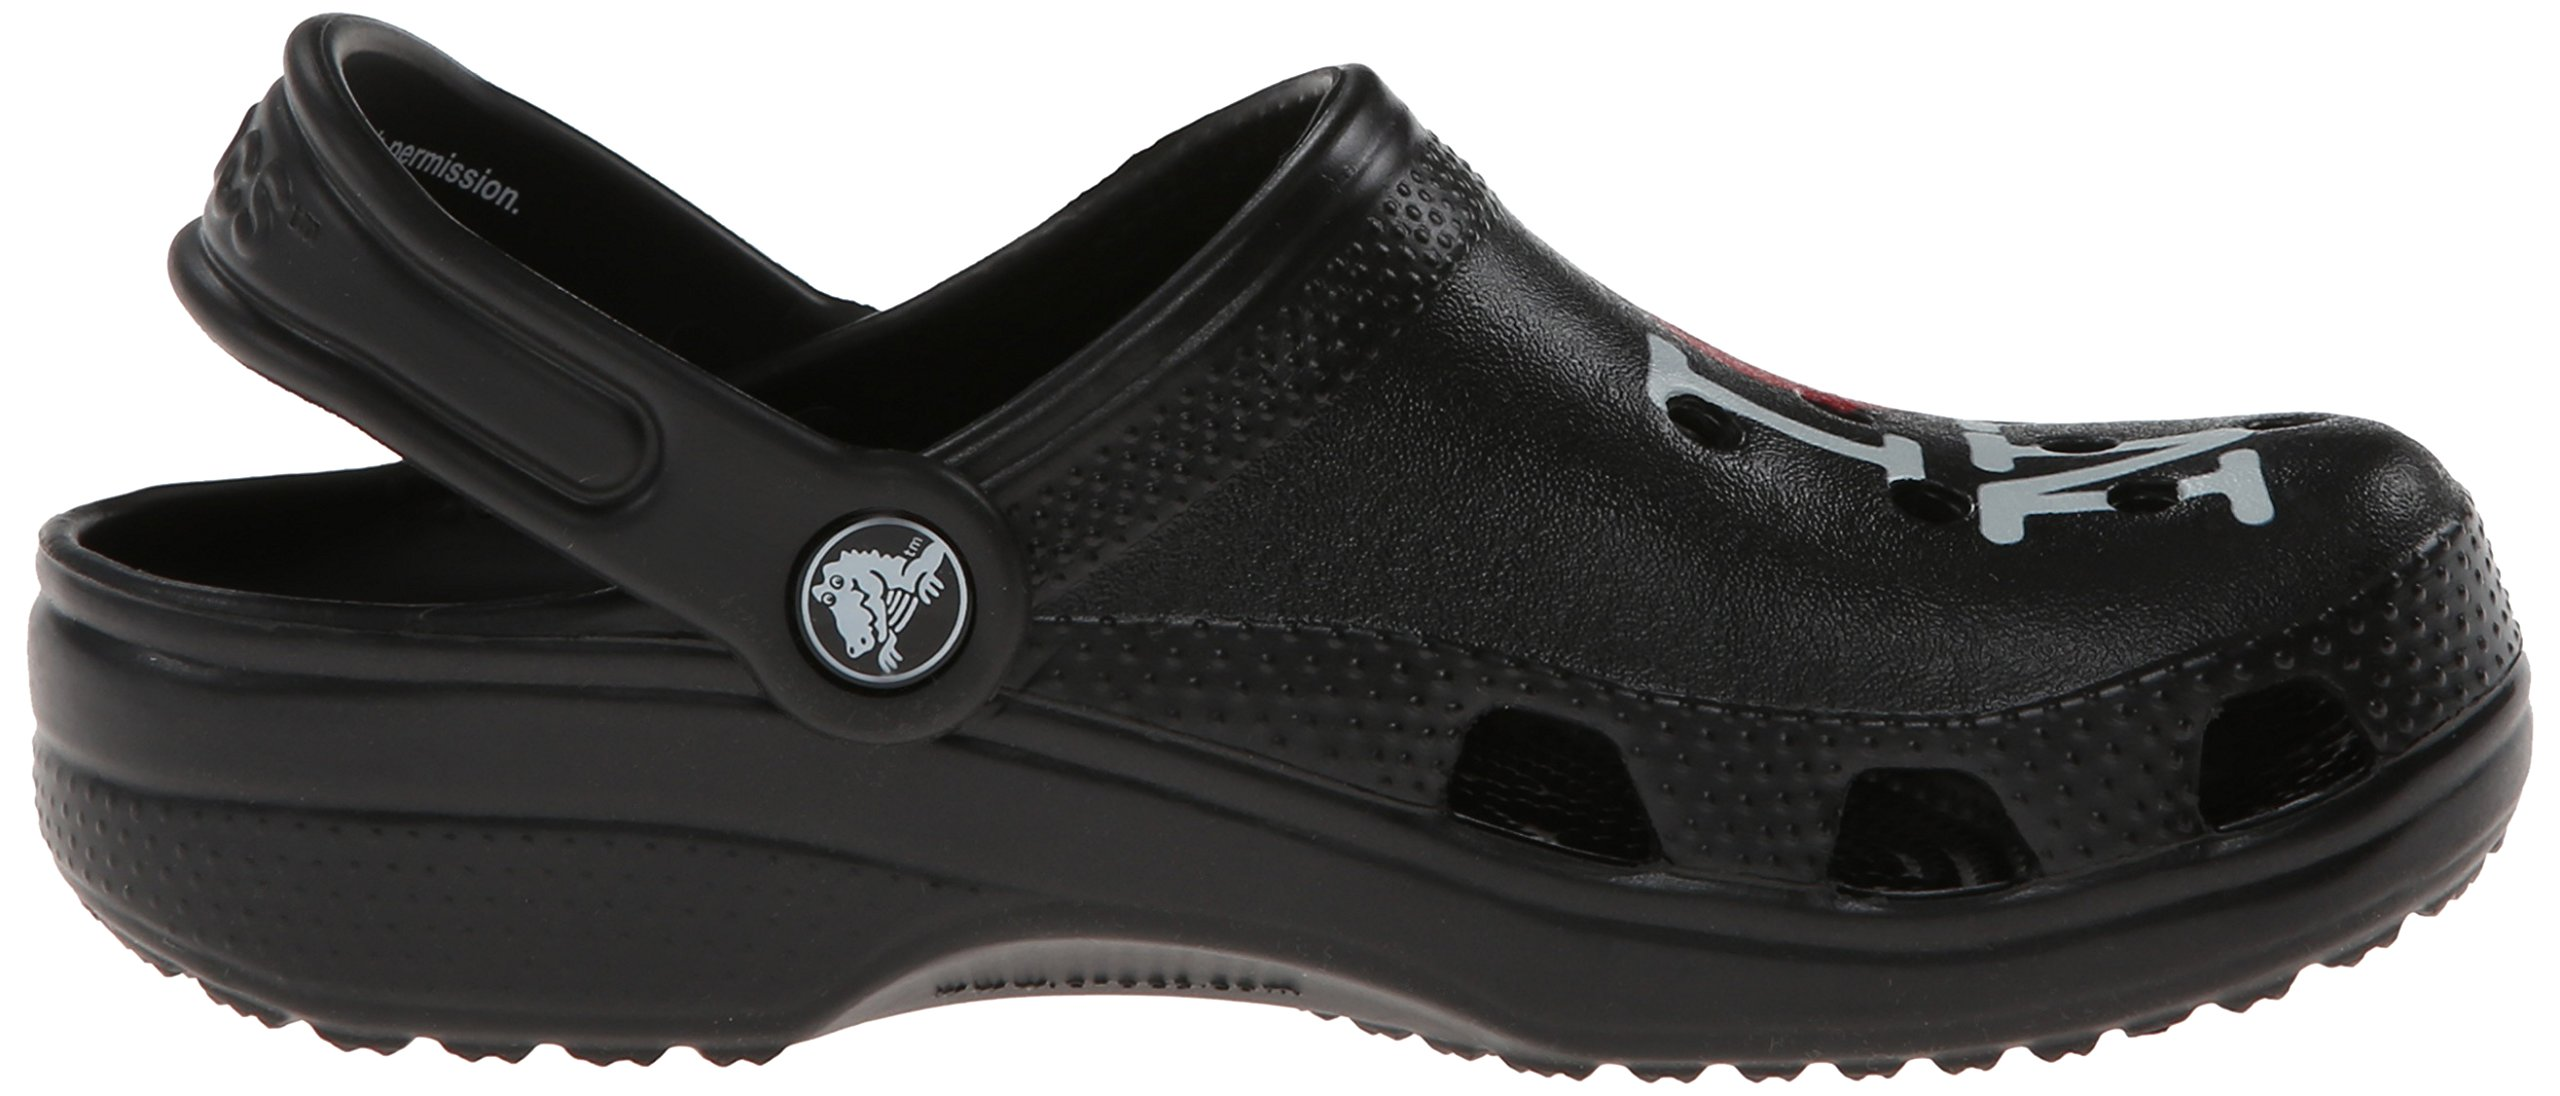 Crocs Kids 15394 I Love NY Classic Clog (Toddler/Little Kid),Black,8 M US Toddler by Crocs (Image #7)